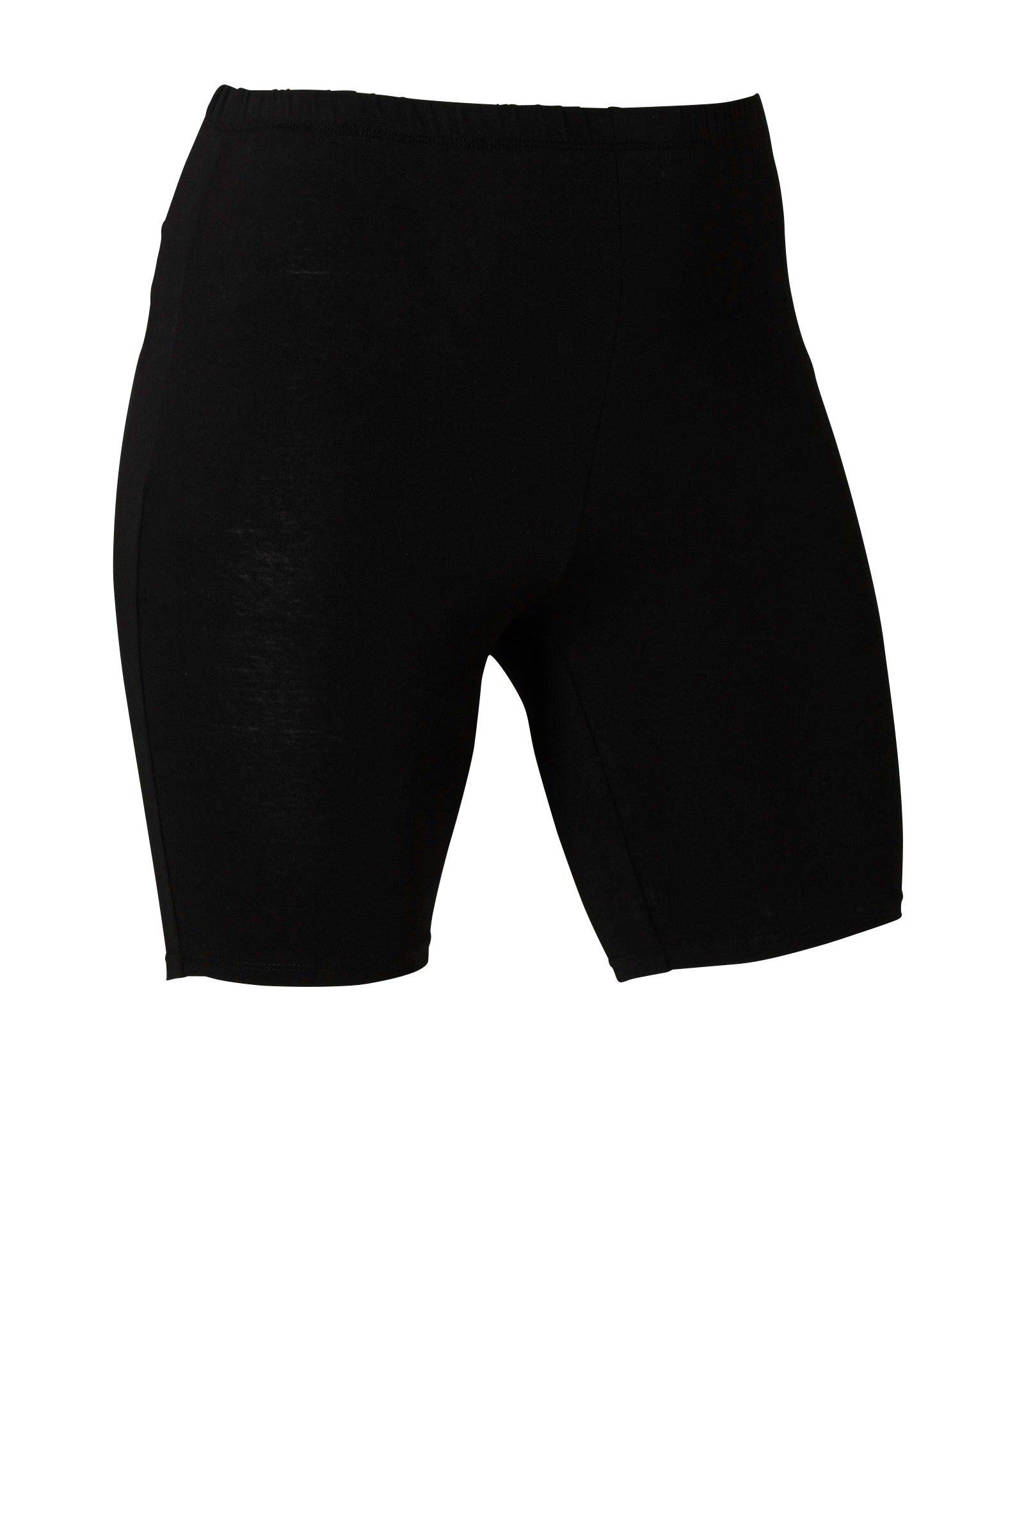 Korte Sportlegging.Whkmp S Great Looks Korte Legging Wehkamp